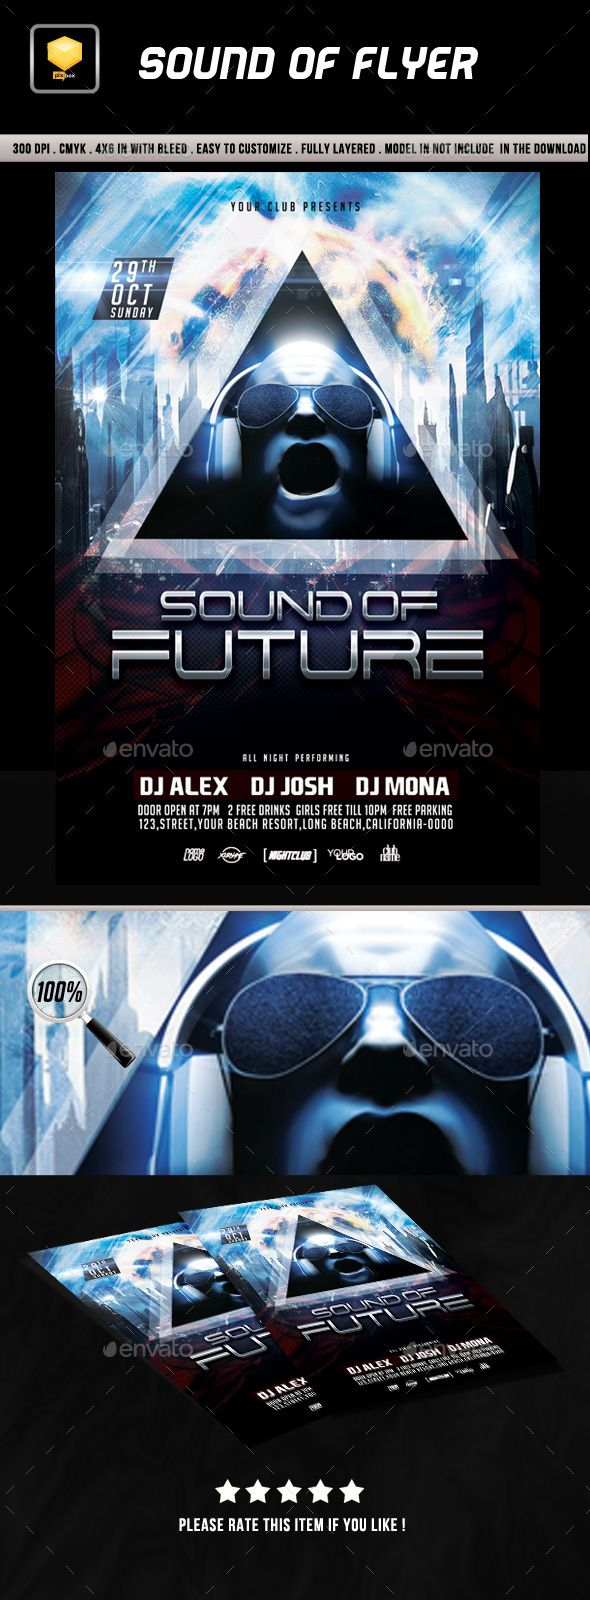 Sound Of Future Flyer Template PSD. Download here: https://graphicriver.net/item/sound-of-future-flyer/17293280?ref=ksioks